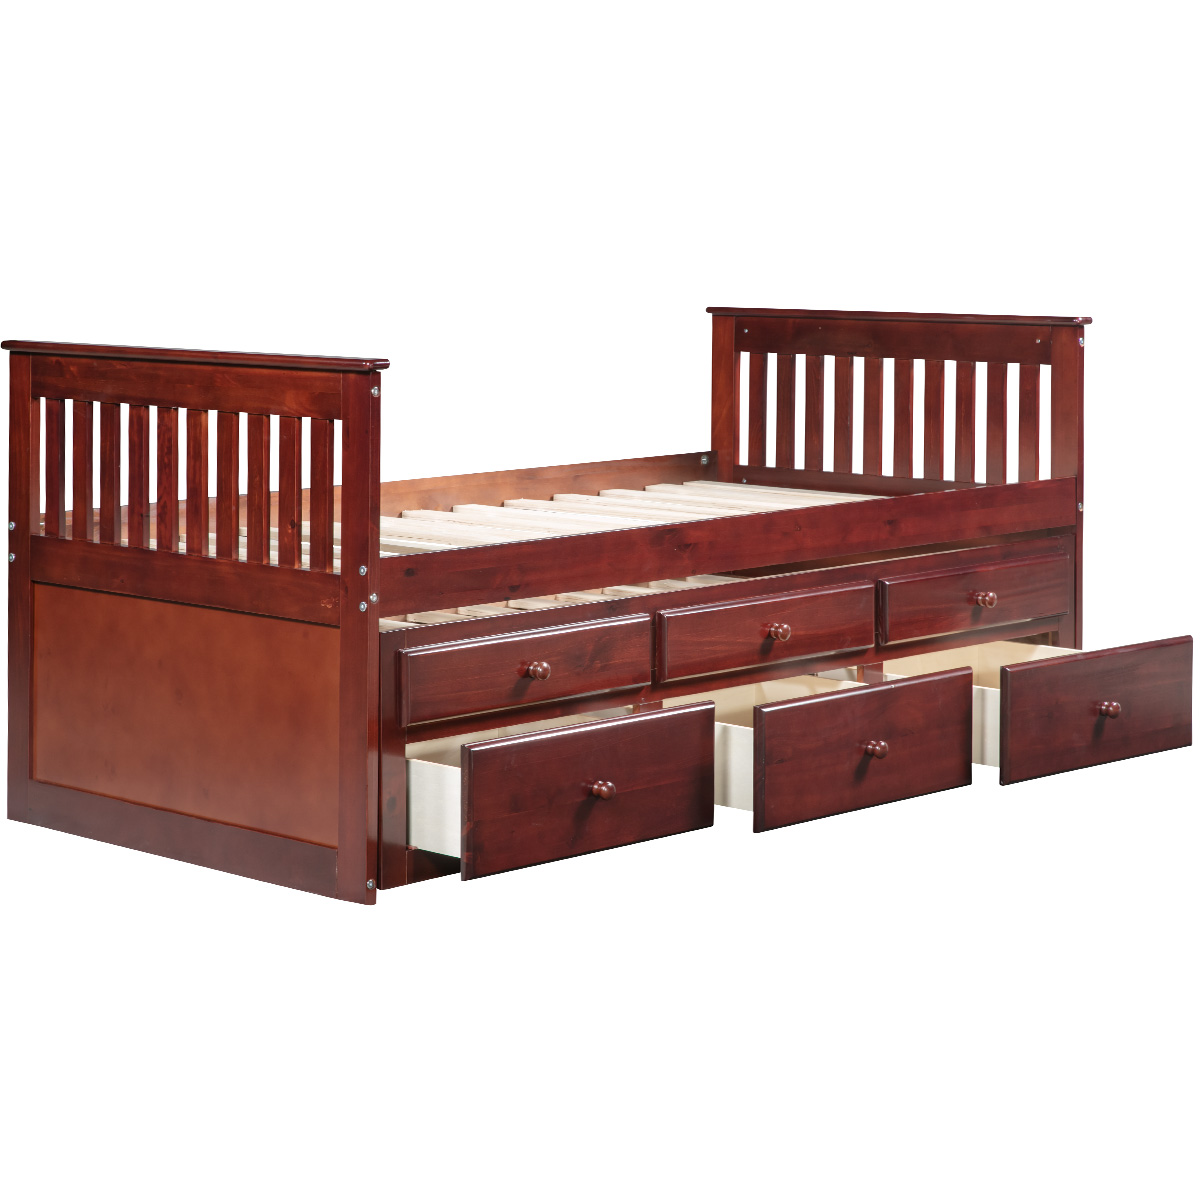 Captains Bed Twin Daybed with Trundle Bed and 6 Storage DrawersCaptains Bed Twin Daybed with Trundle Bed and 6 Storage Drawers